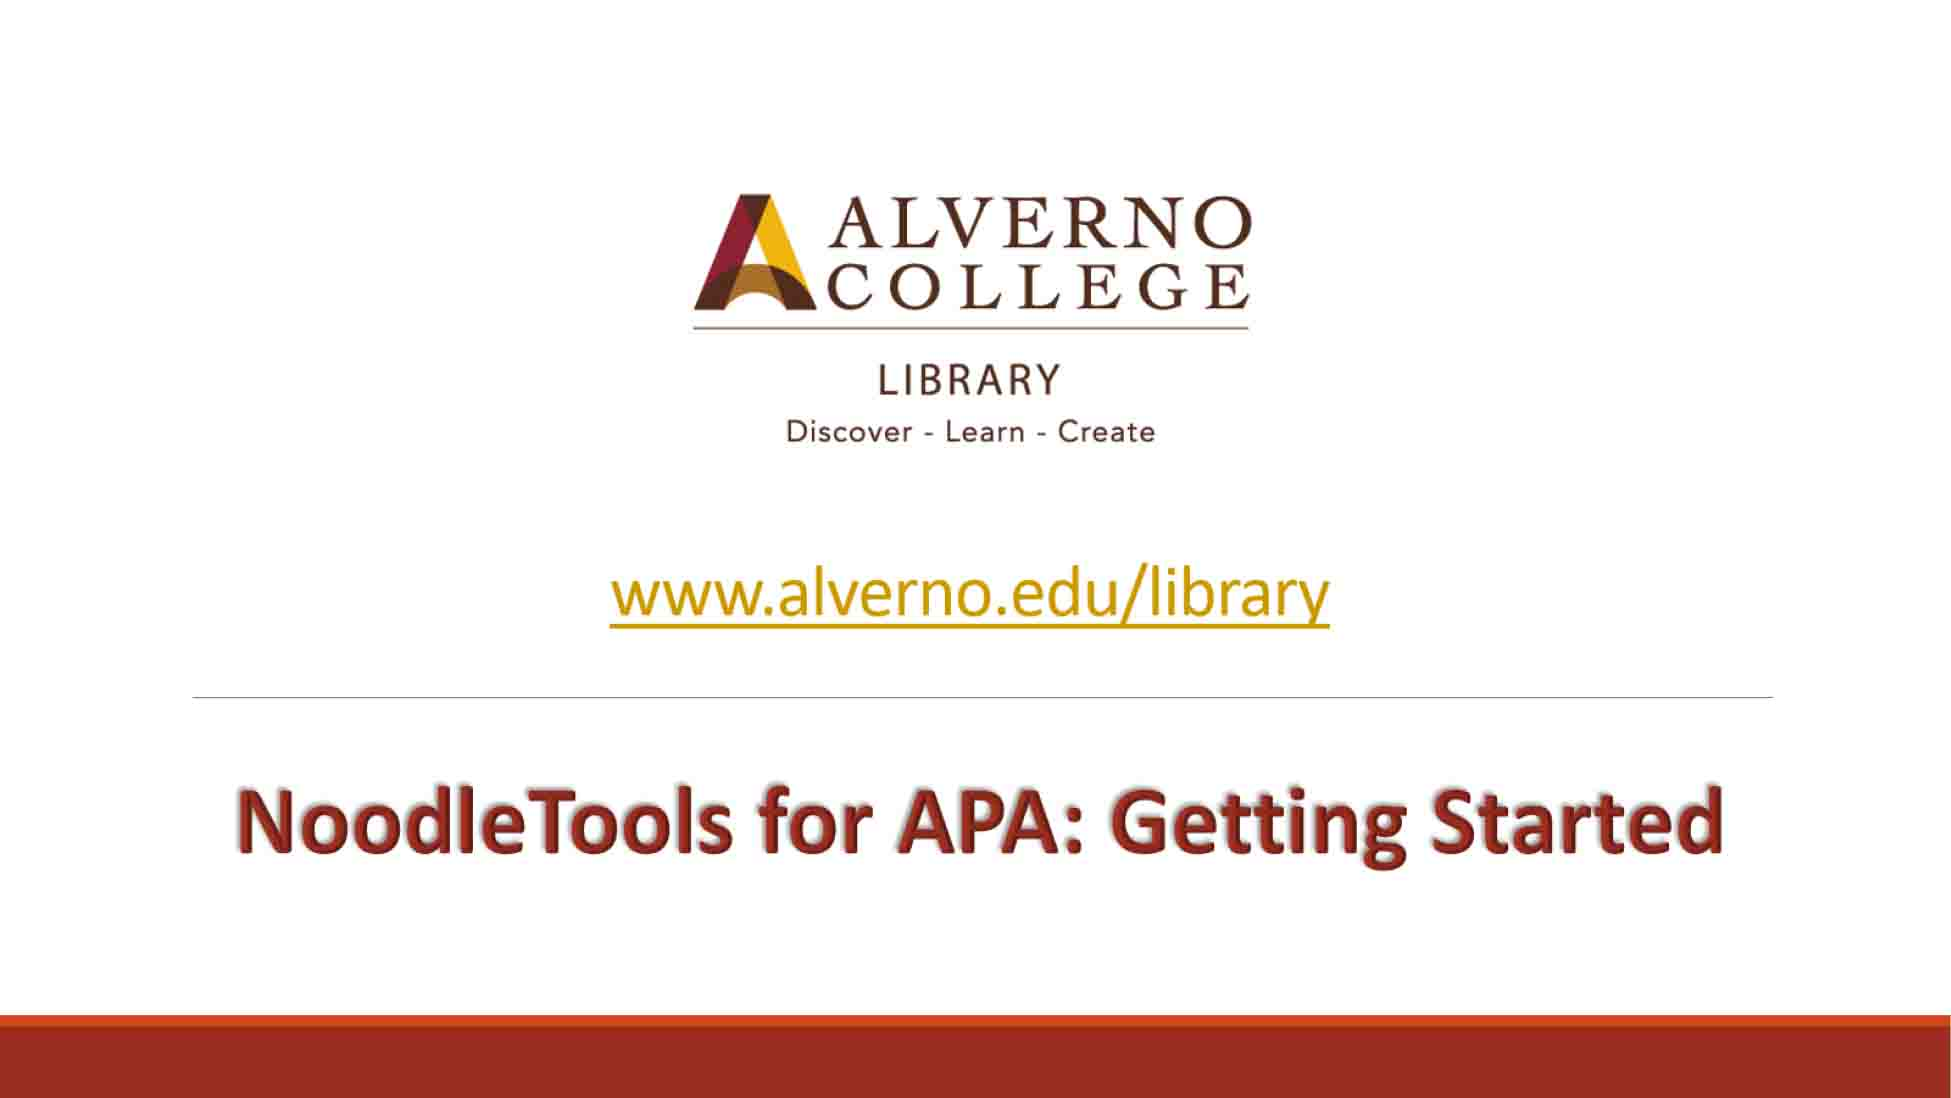 Noodle Tools for APA